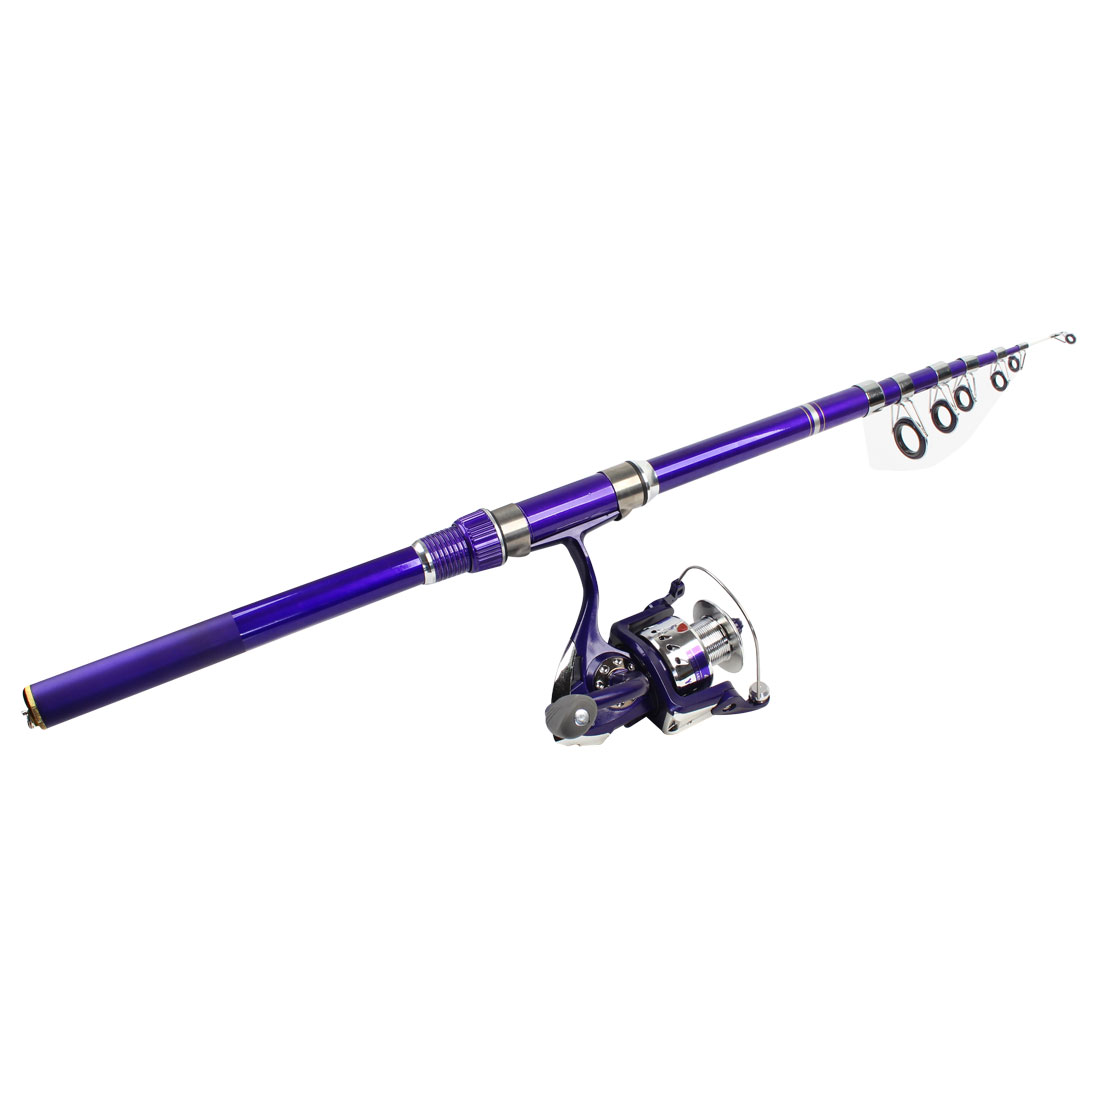 8 in 1 Fish Bobbers Fishooks Alert Bell 2.6m Fishing Pole Purple Set